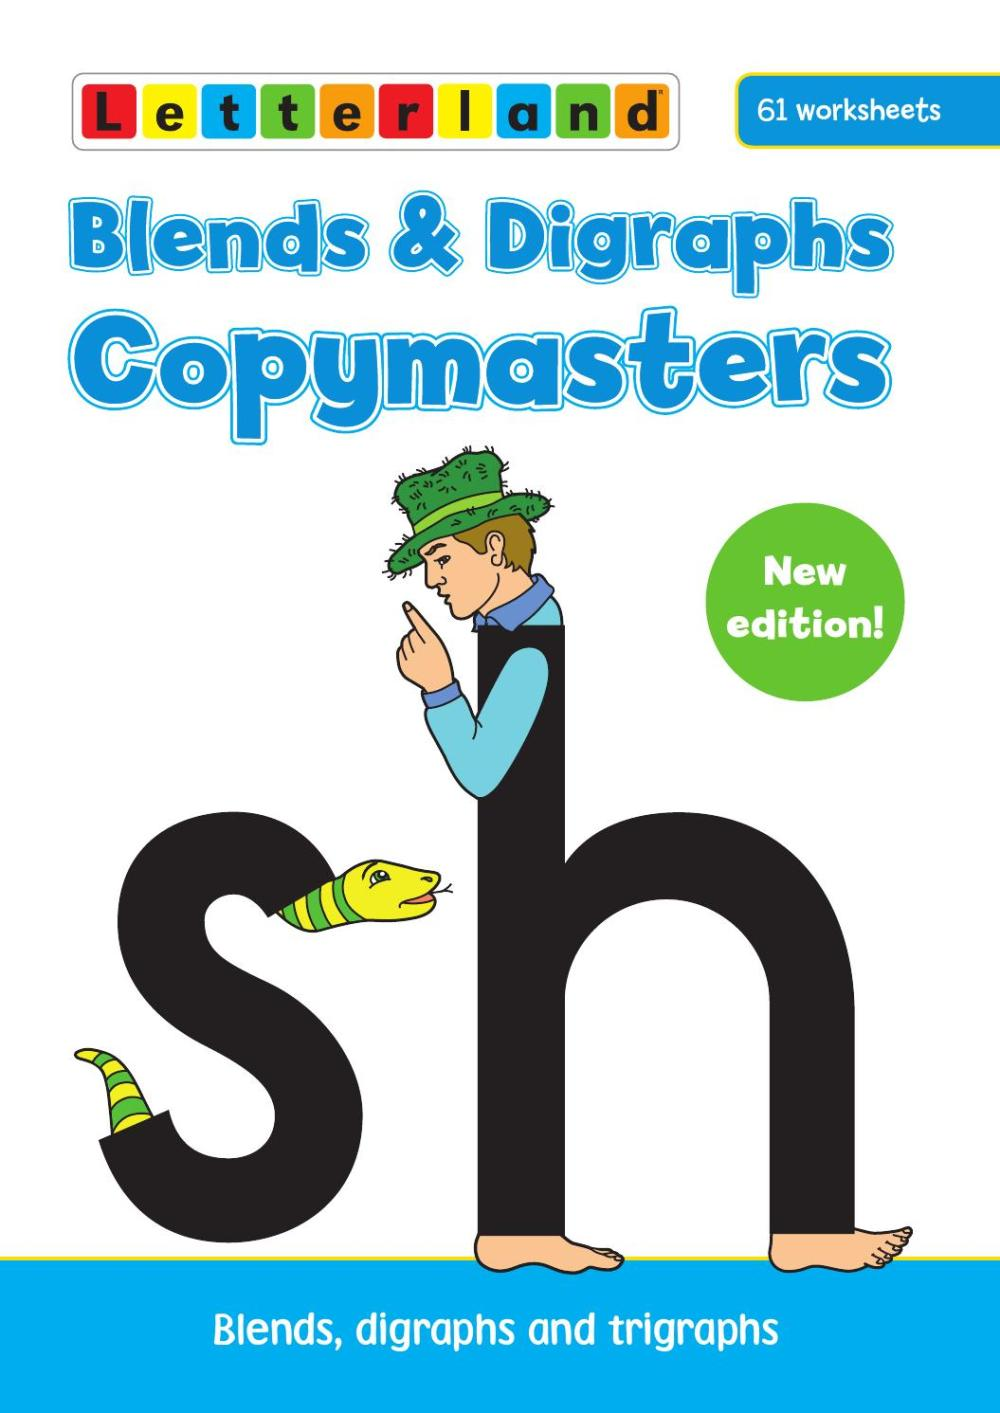 medium resolution of Blends and Digraphs Copymasters by Letterland - issuu